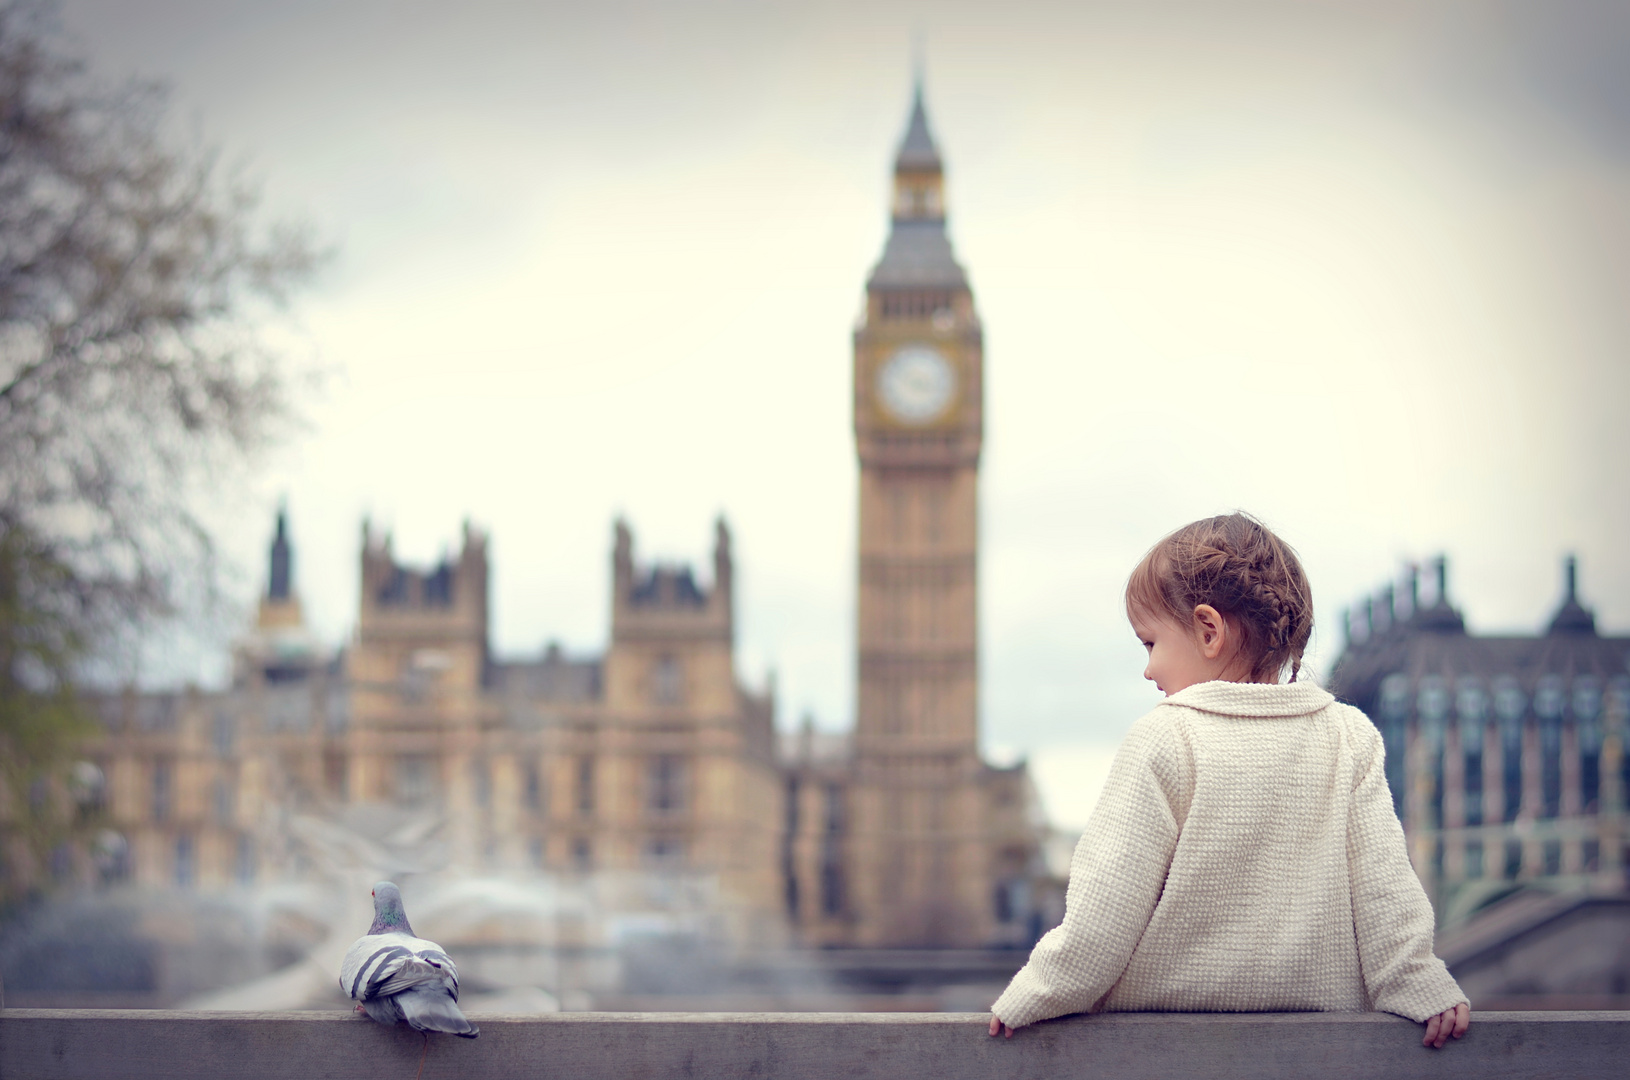 Little Matilda and Big Ben